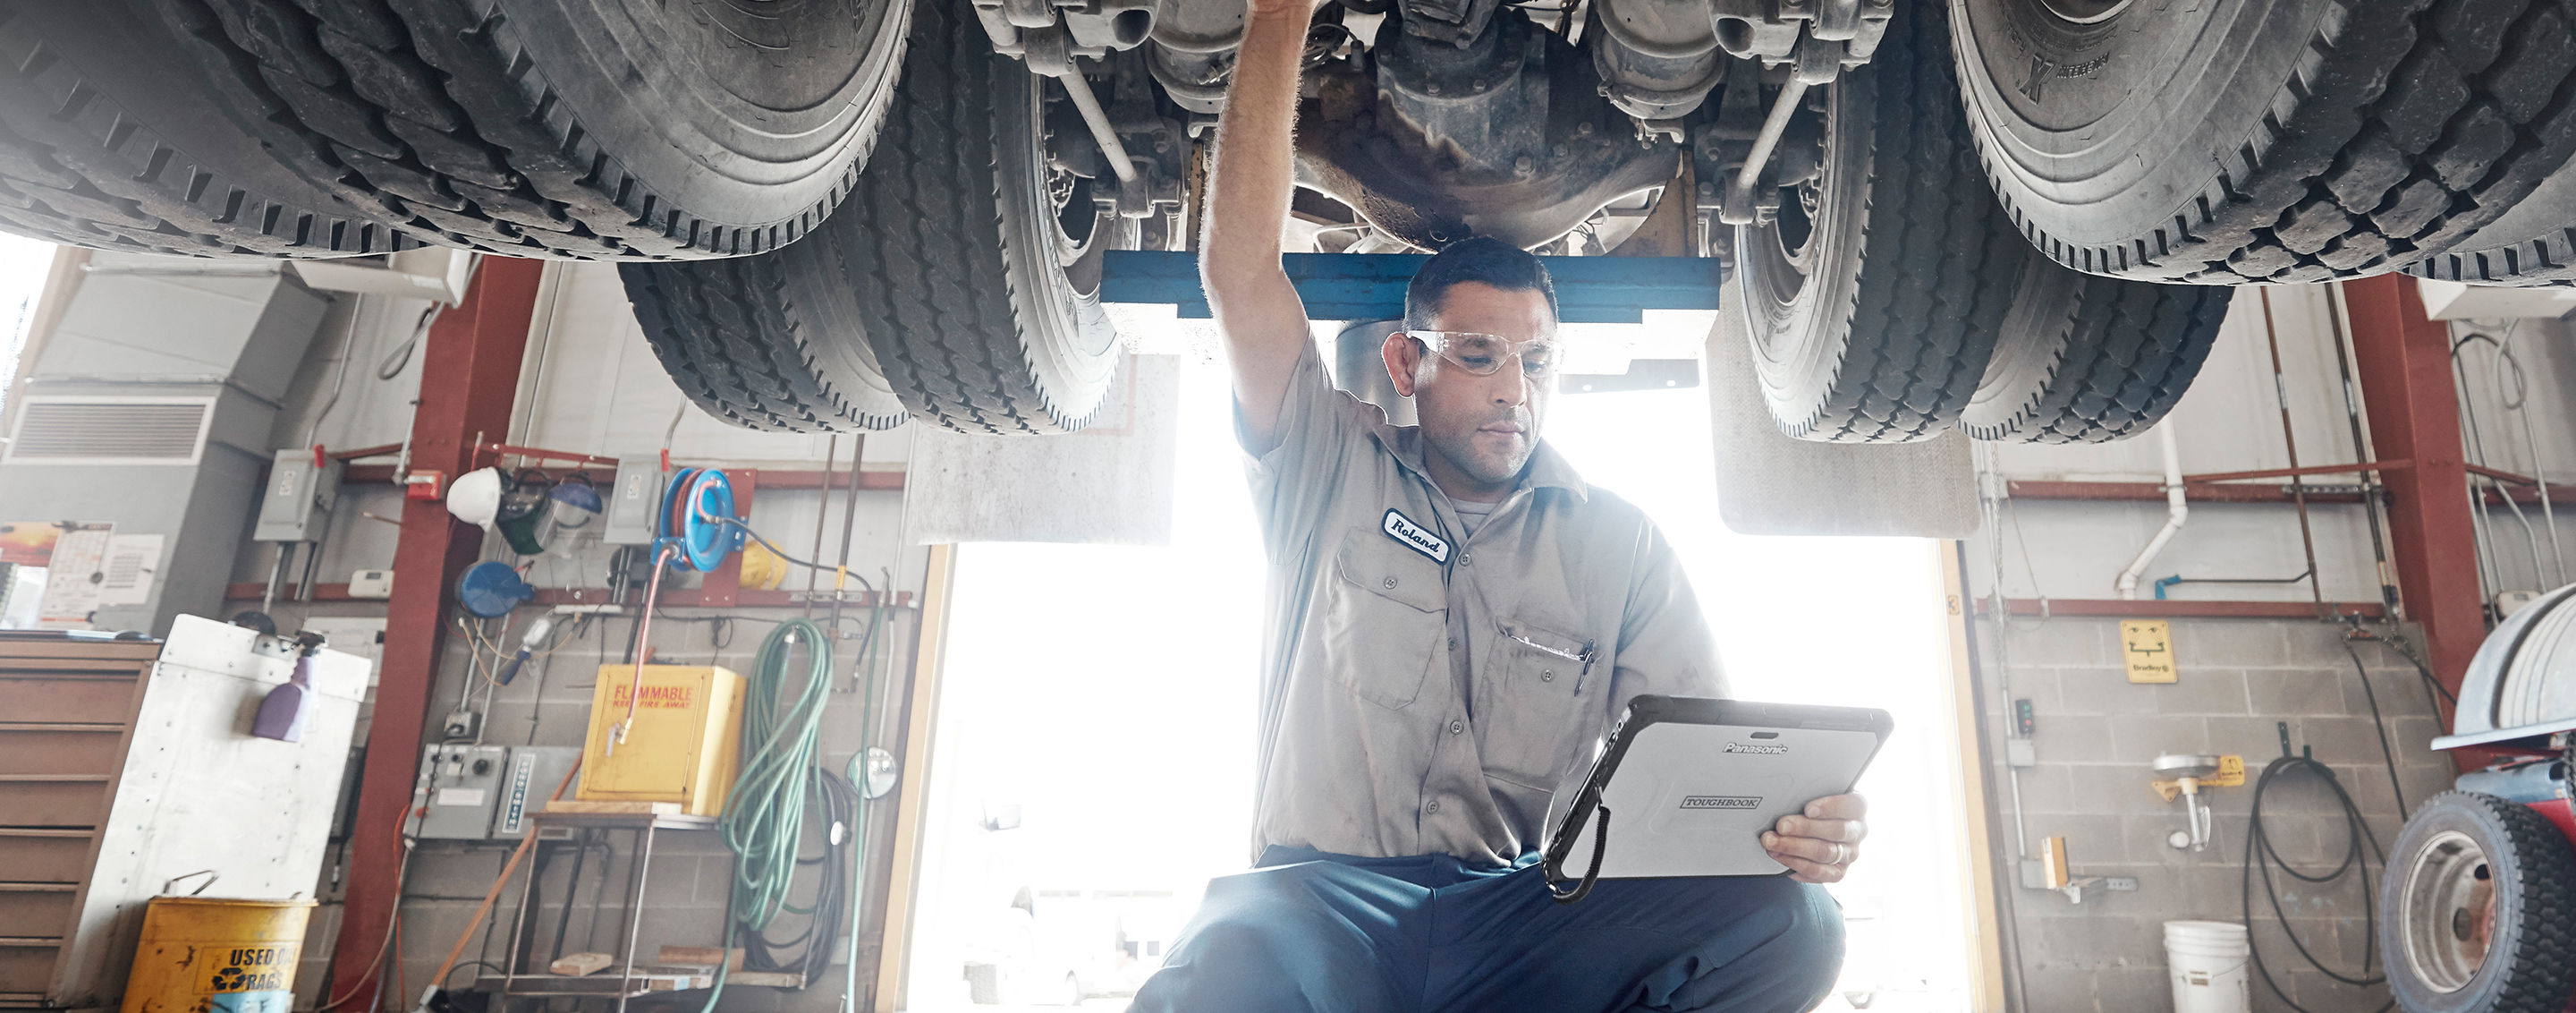 Toughbook for Field Service